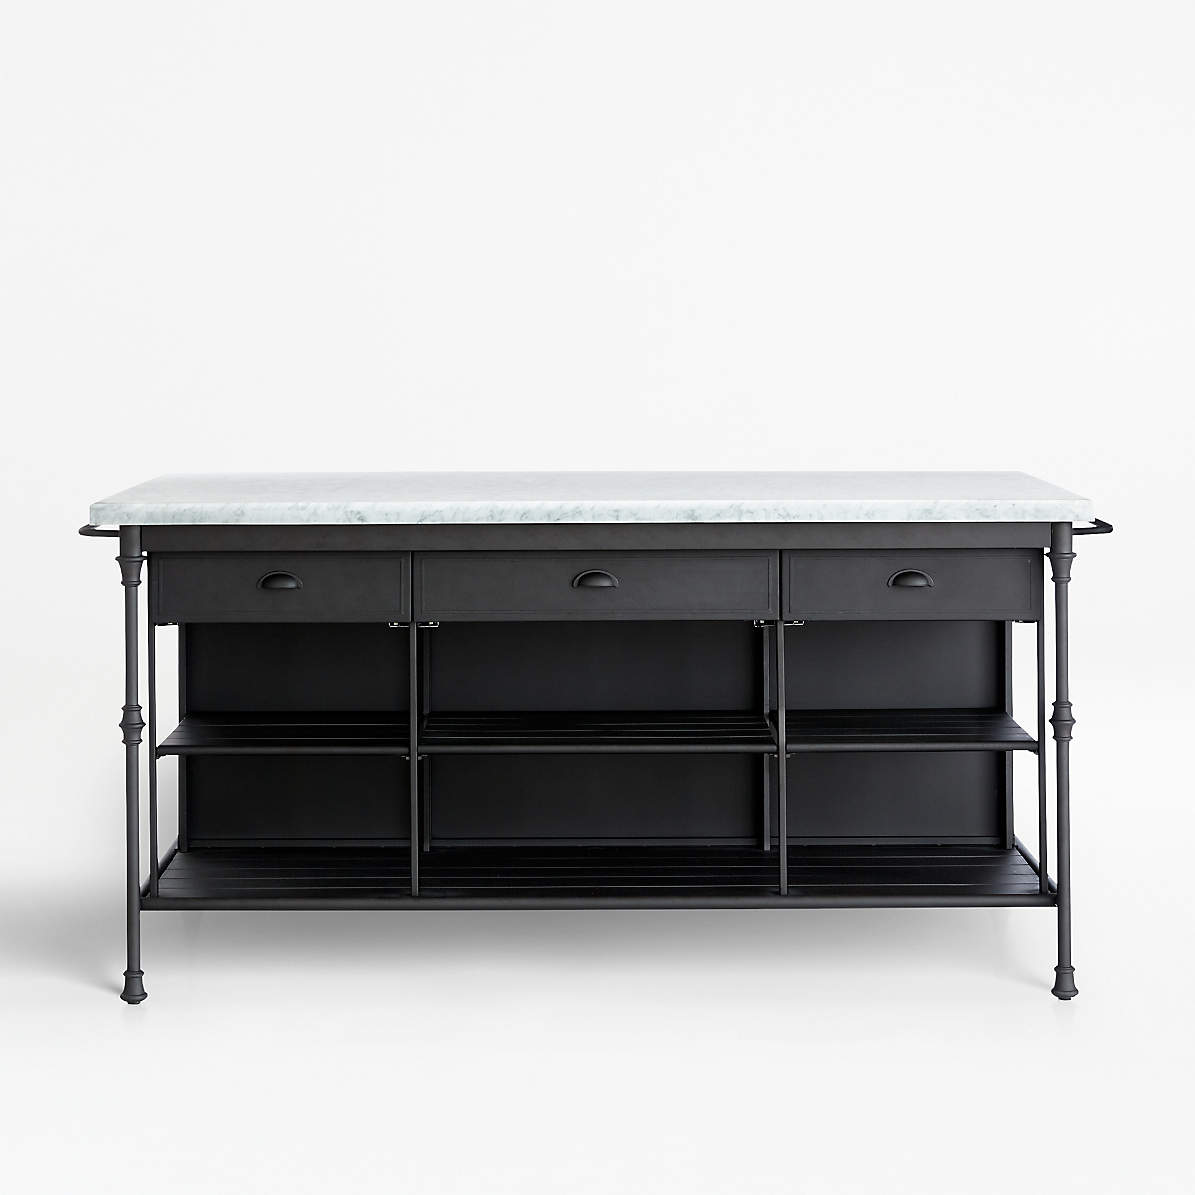 French Kitchen 72 Large Kitchen Island Reviews Crate And Barrel Canada